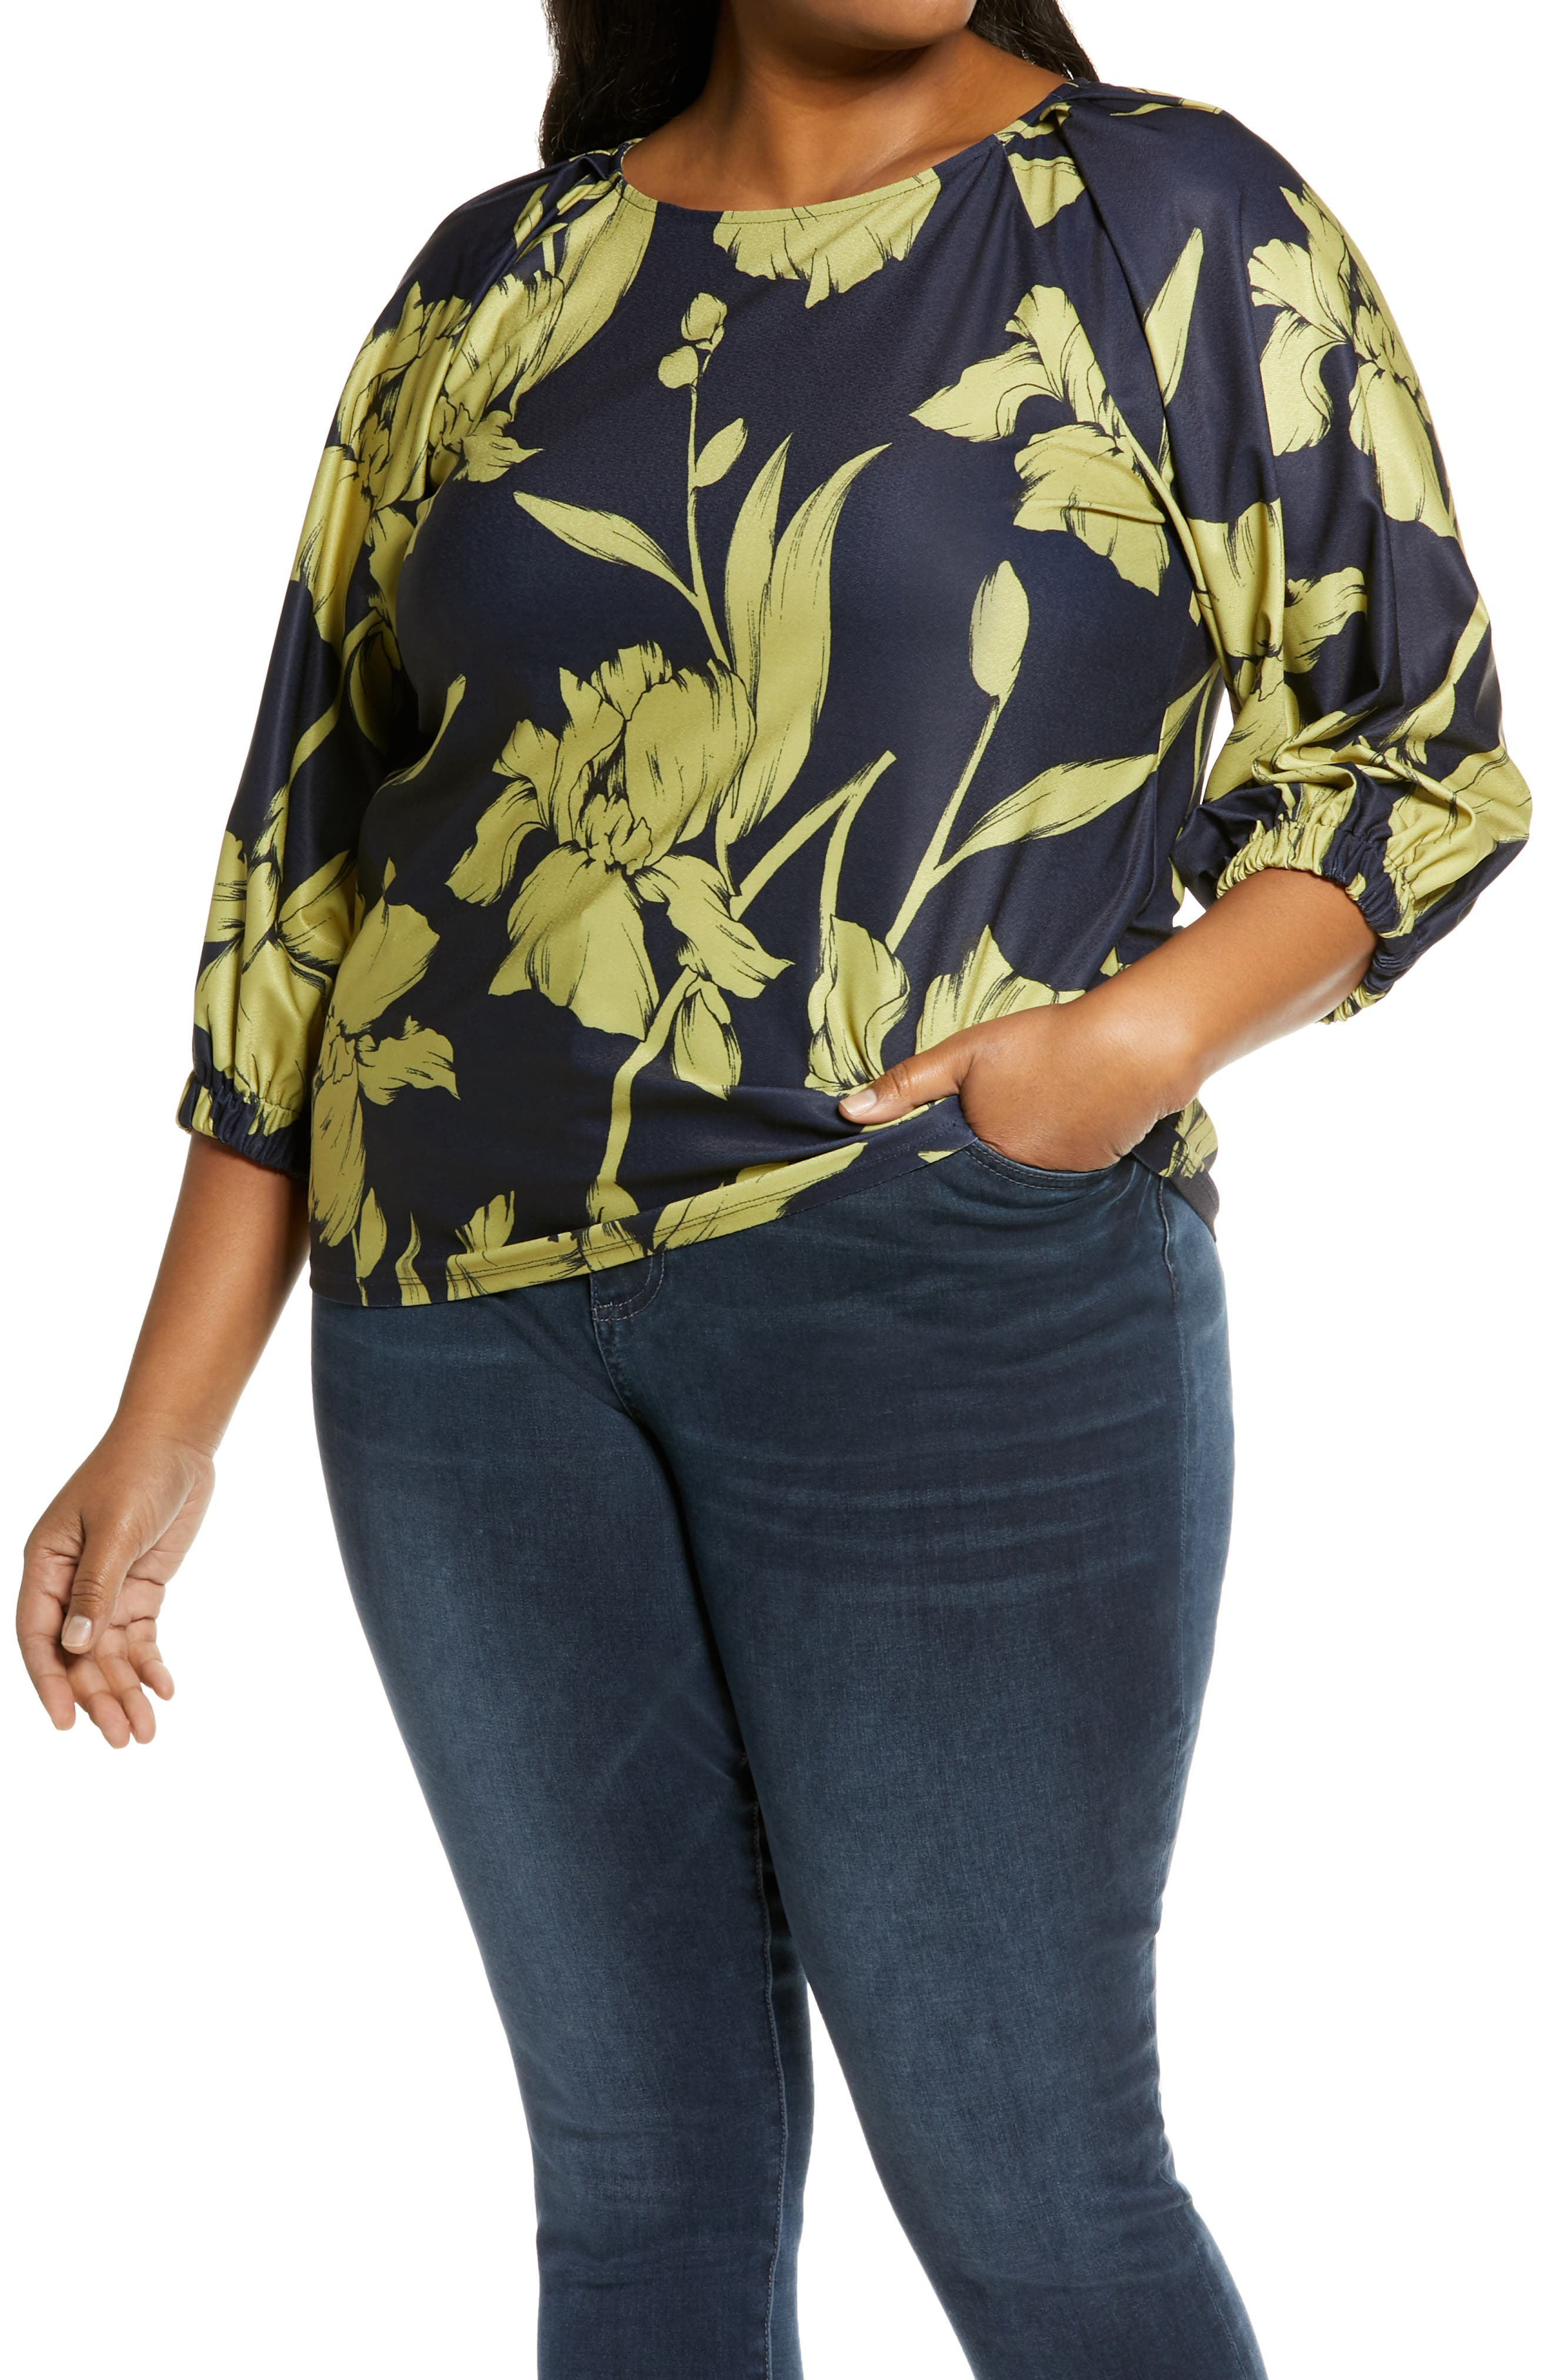 Billowed sleeves frame this flowy knit top that\\\'s versatile and charming any day of the week. Style Name: Halogen Balloon Sleeve Knit Top (Plus Size). Style Number: 6013432. Available in stores.